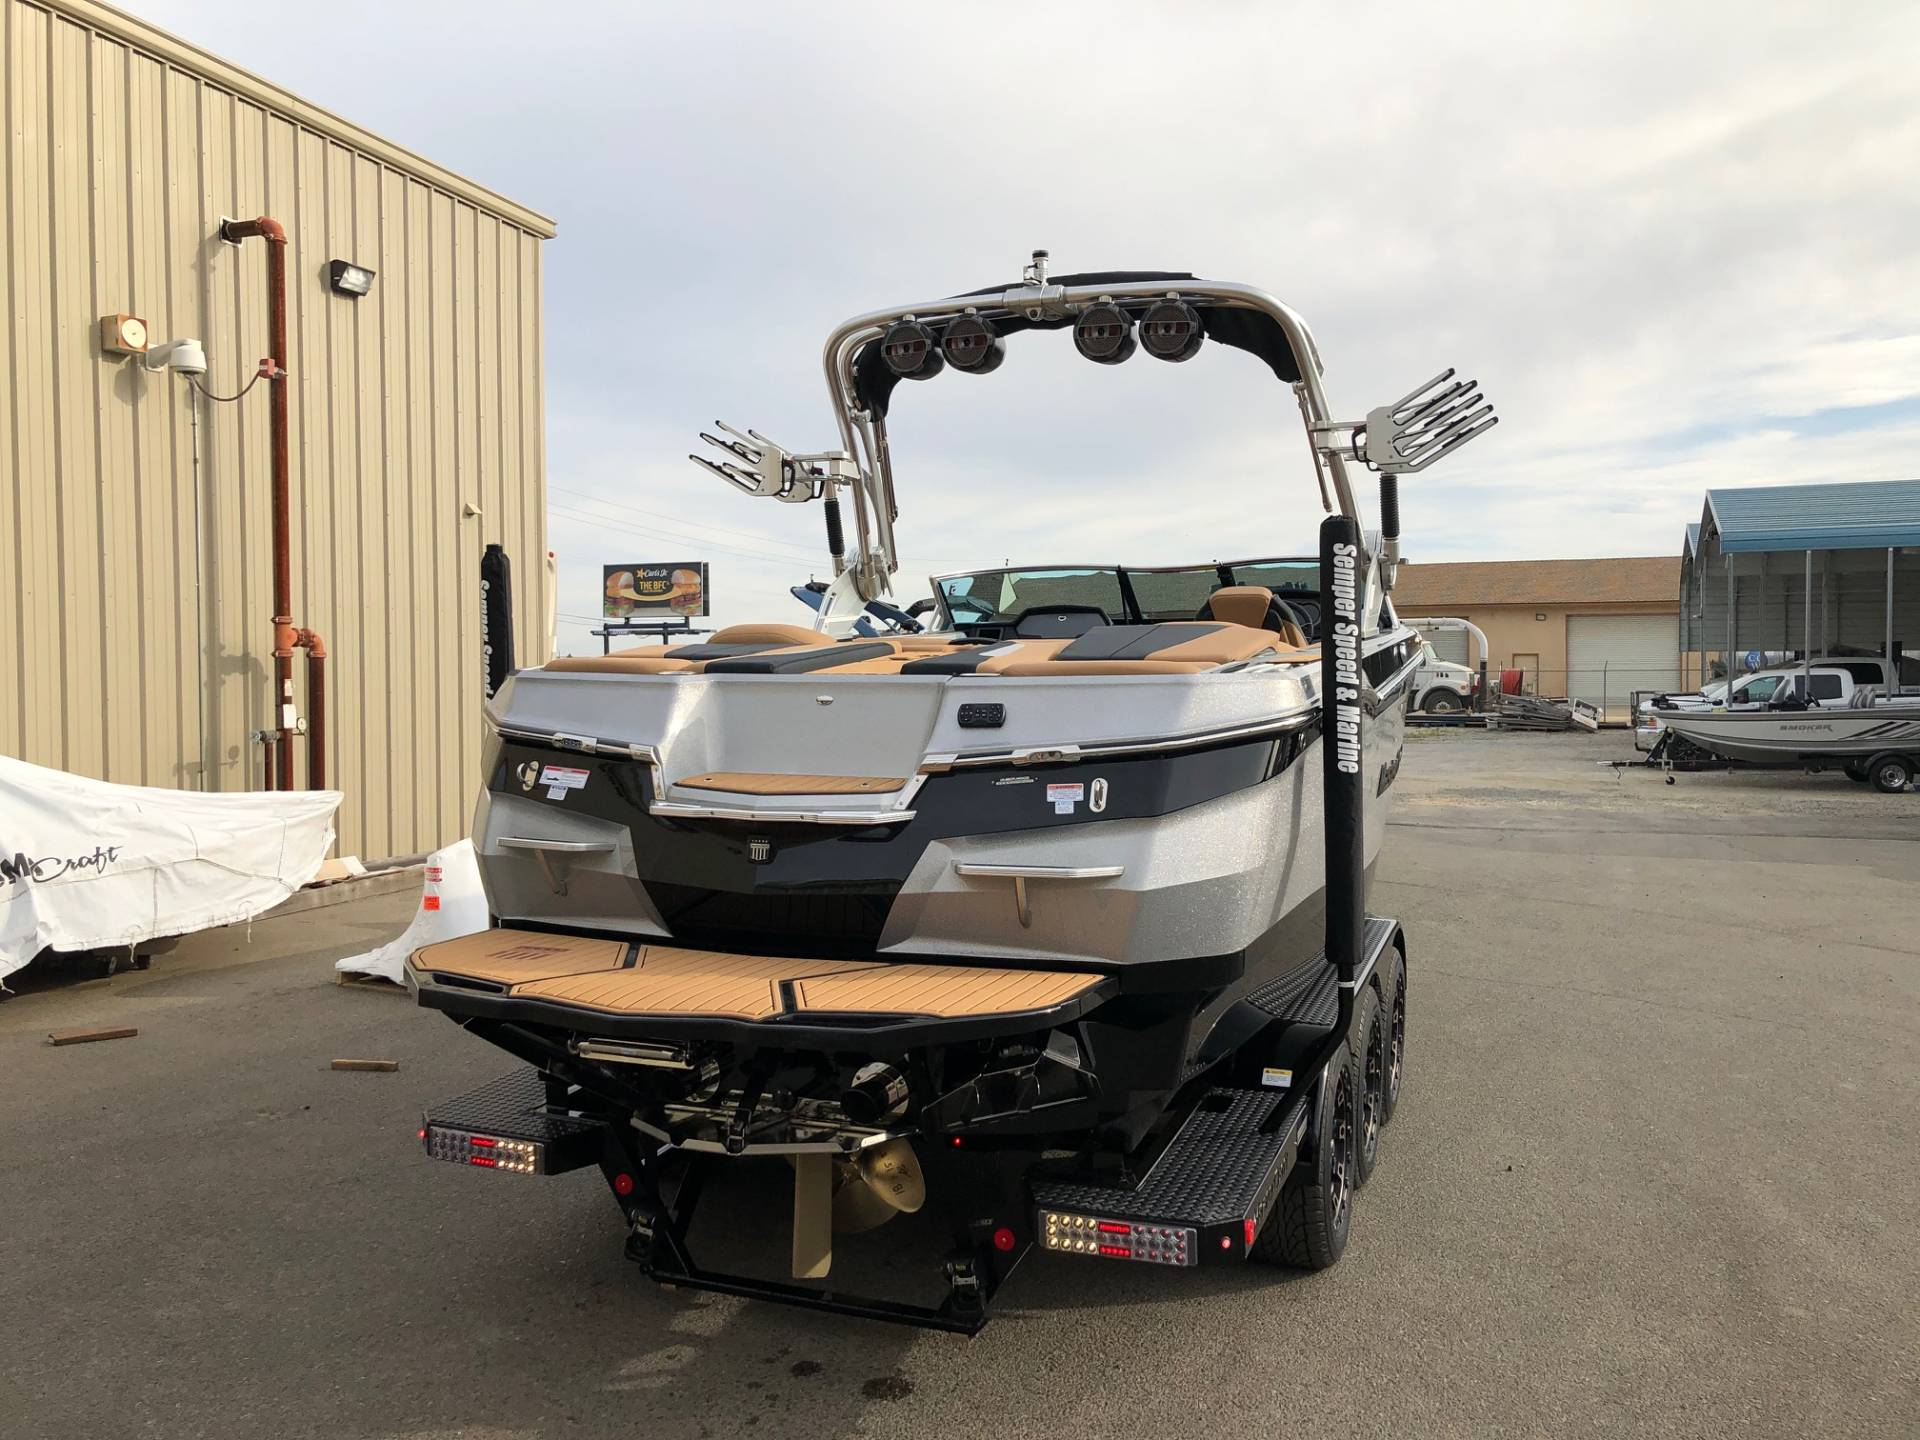 2020 Mastercraft XStar in Madera, California - Photo 6